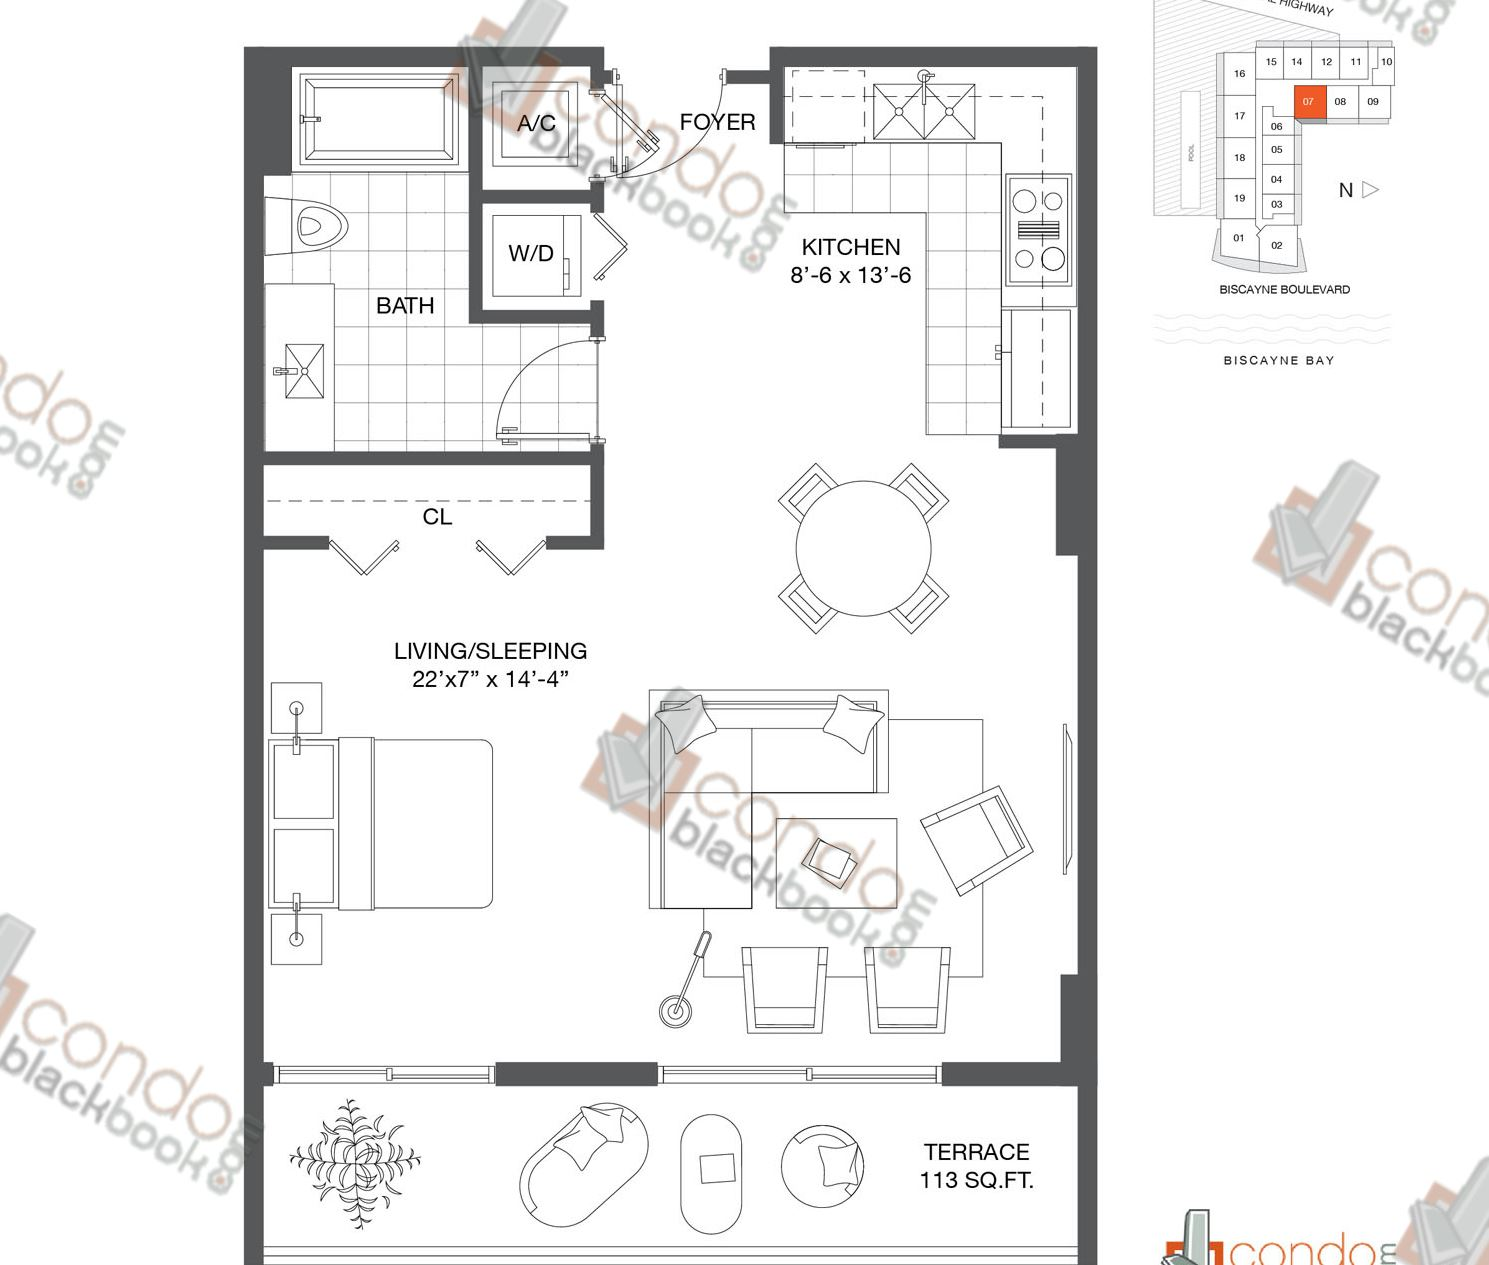 Floor plan for Baltus House Design District / Buena Vista Miami, model Residence 07, line 07, 3/2 bedrooms, 1,520 sq ft